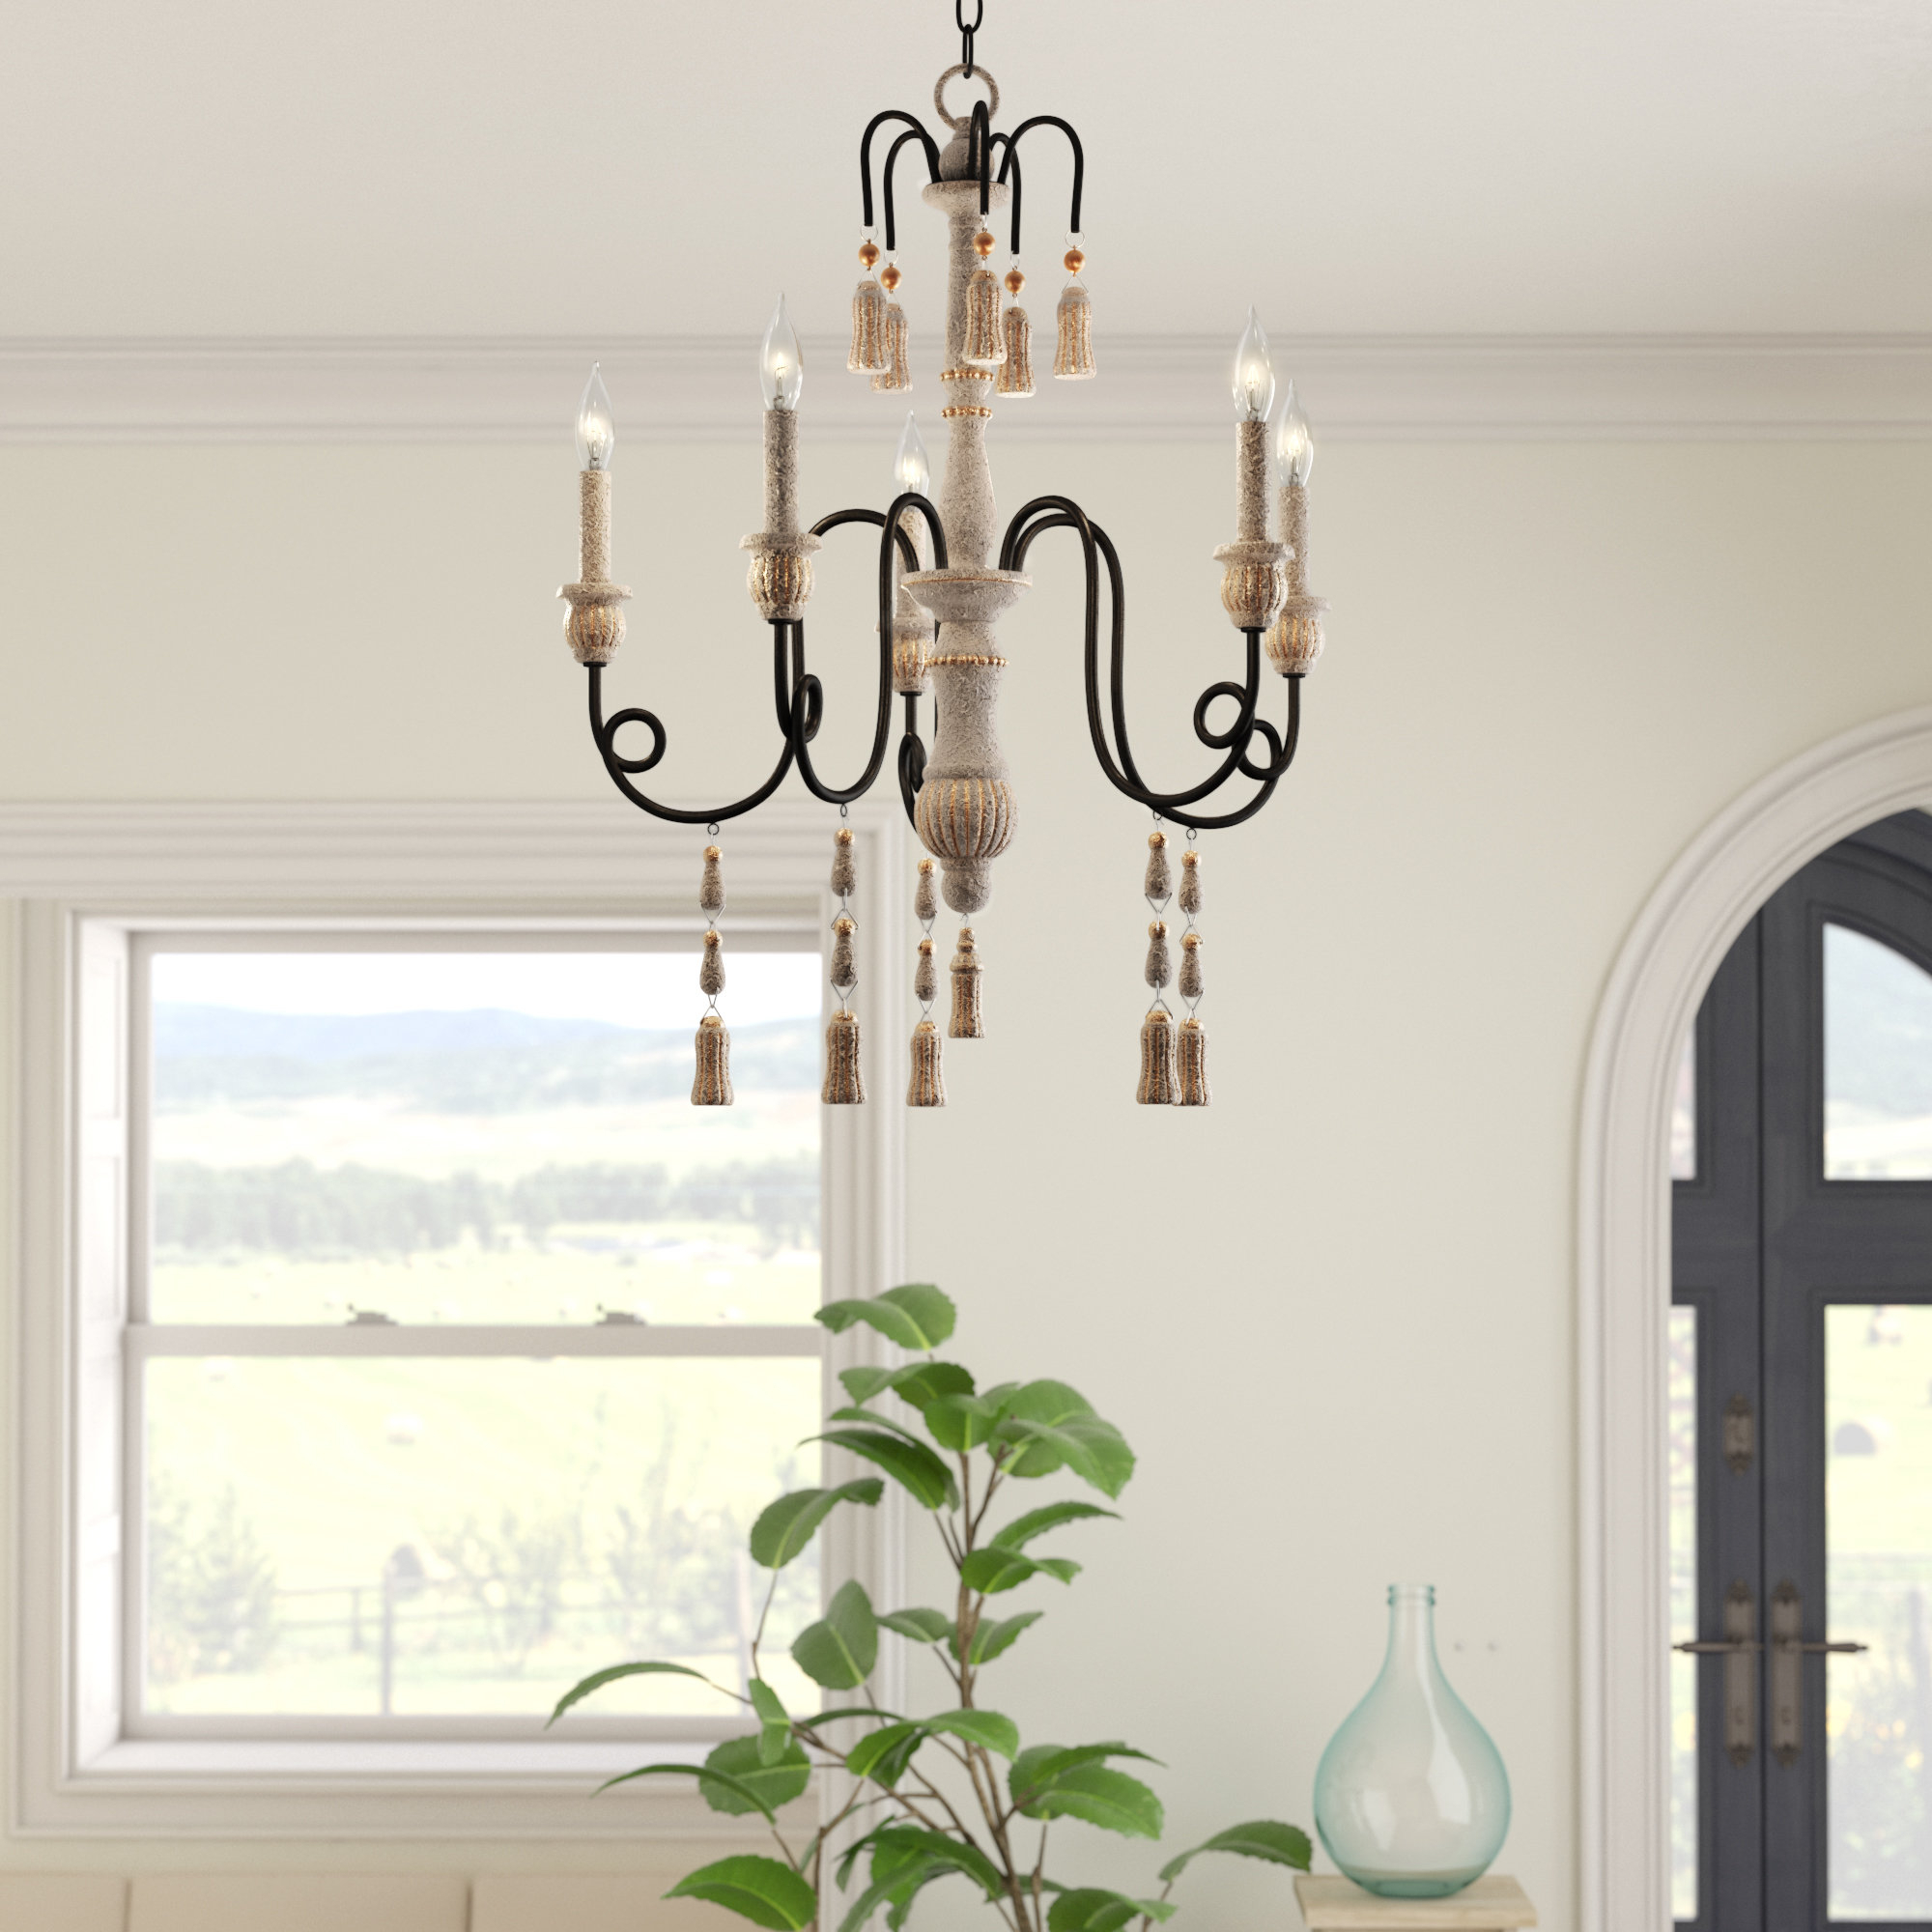 Well Liked Hassan 5 Light Candle Style Chandelier Regarding Corneau 5 Light Chandeliers (View 14 of 25)